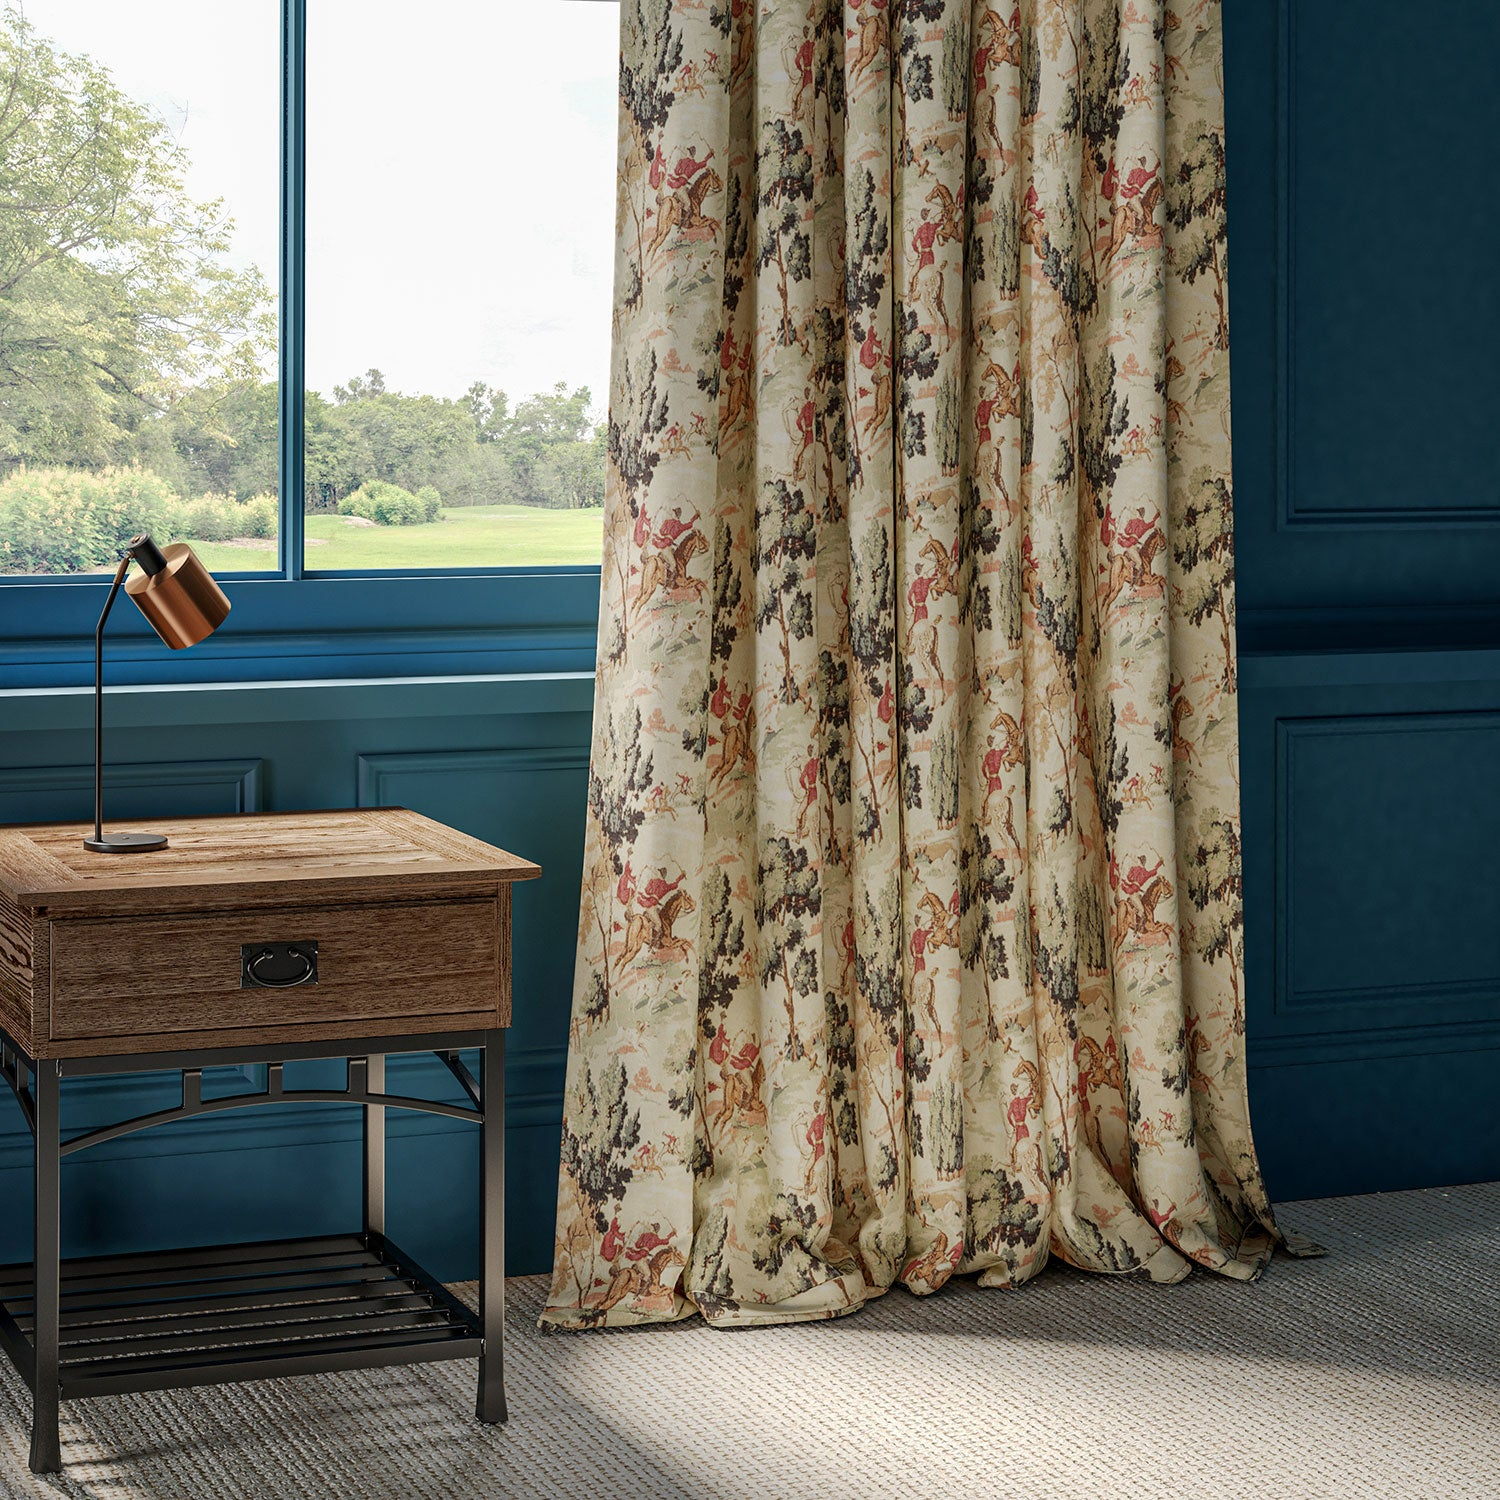 Curtains in a luxurious cotton velvet with Hunting Scene.